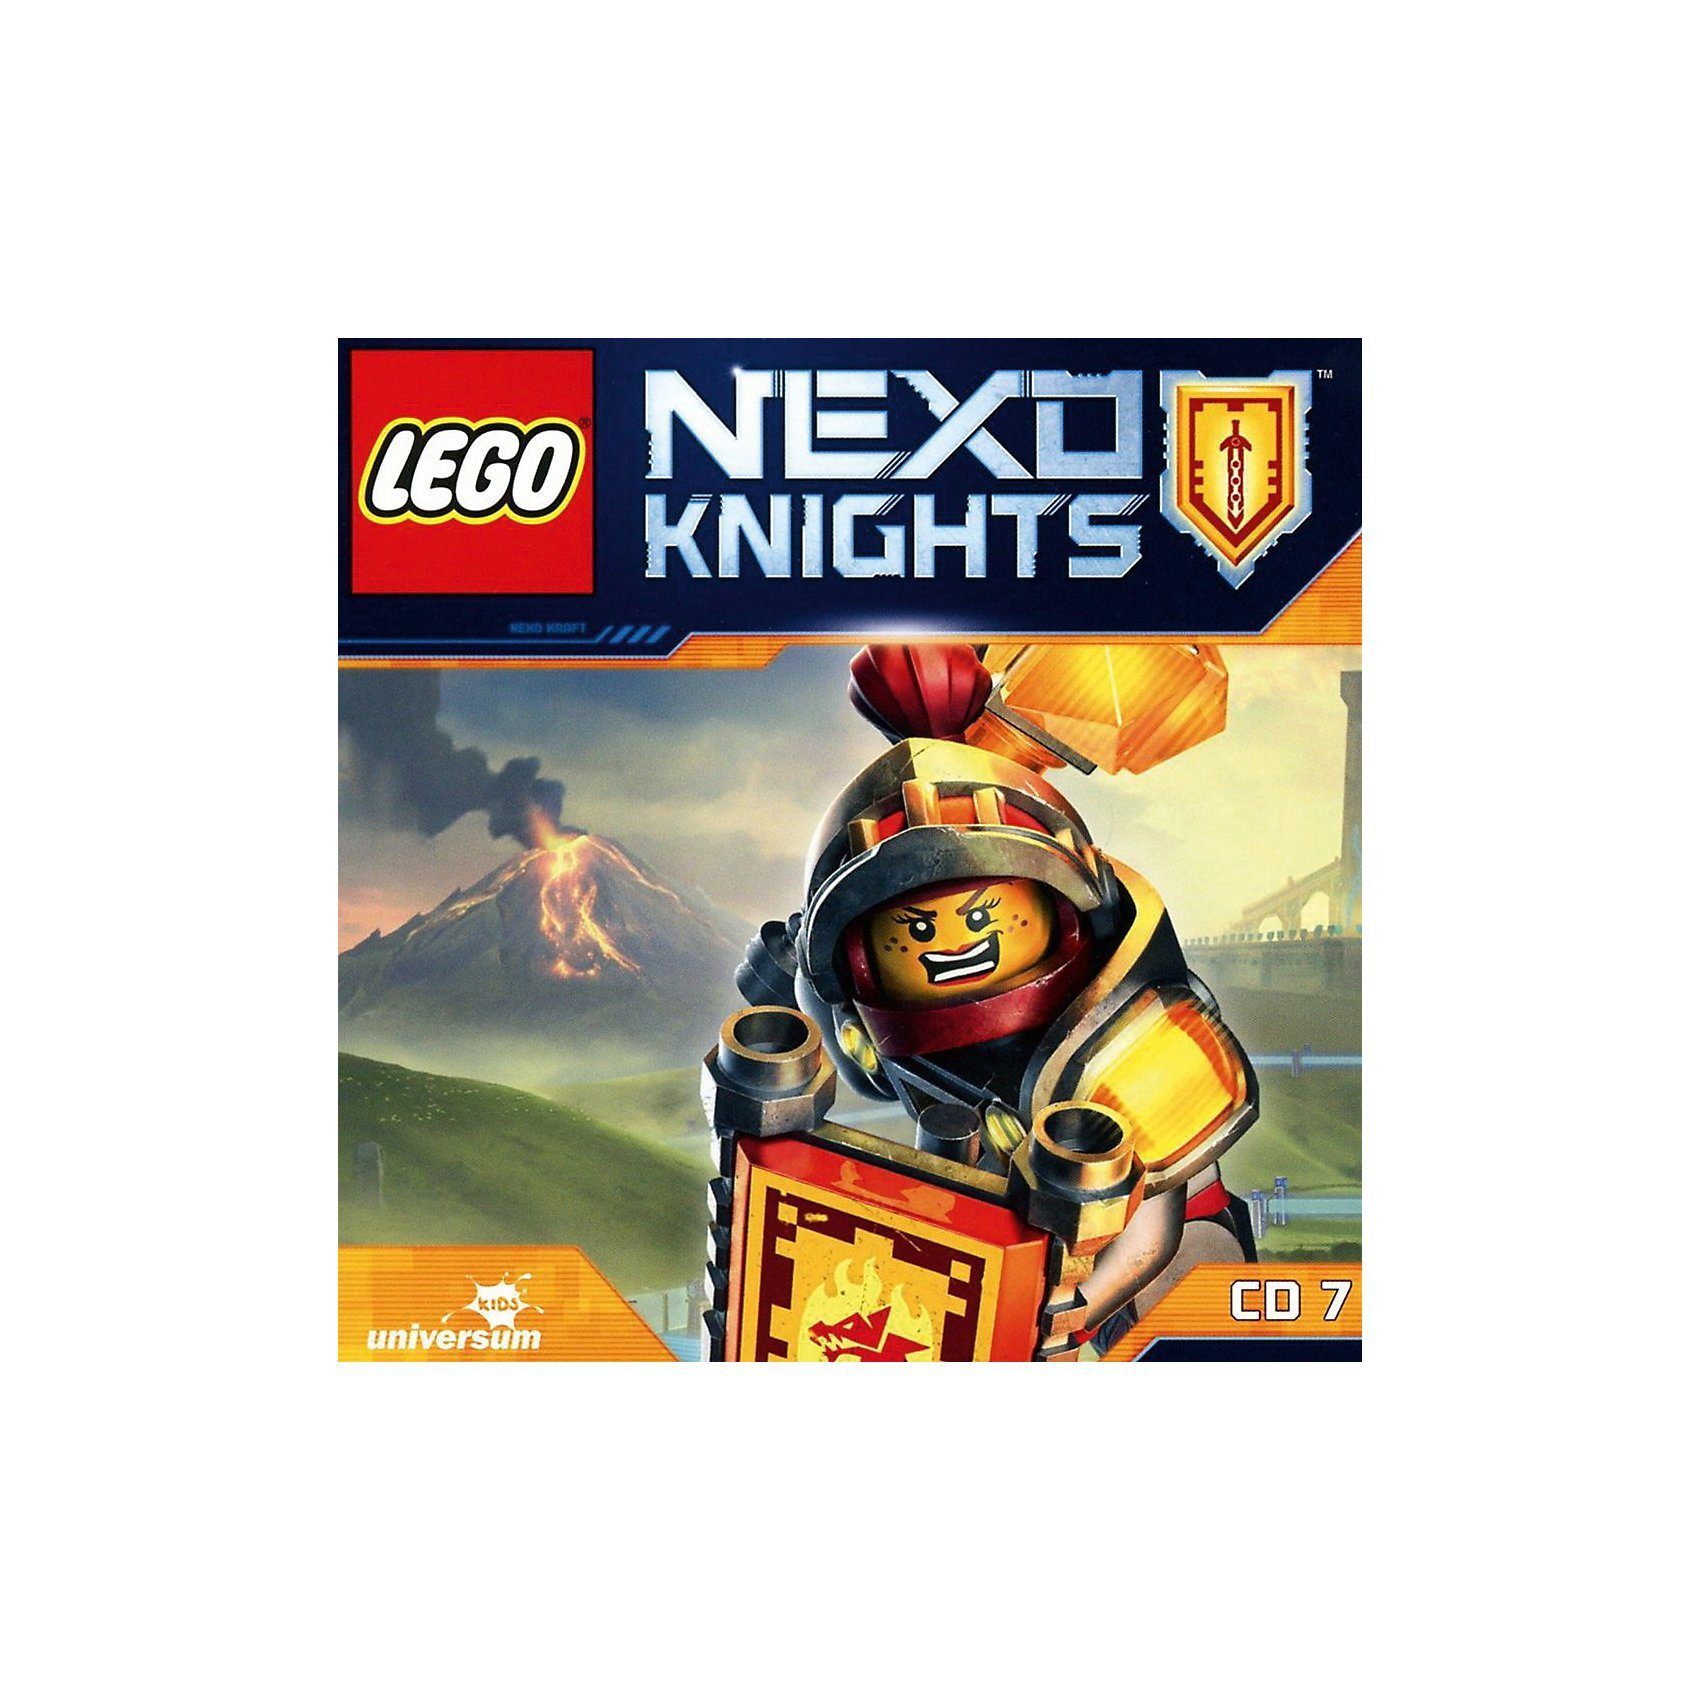 LEGO CD Nexo Knights CD 7